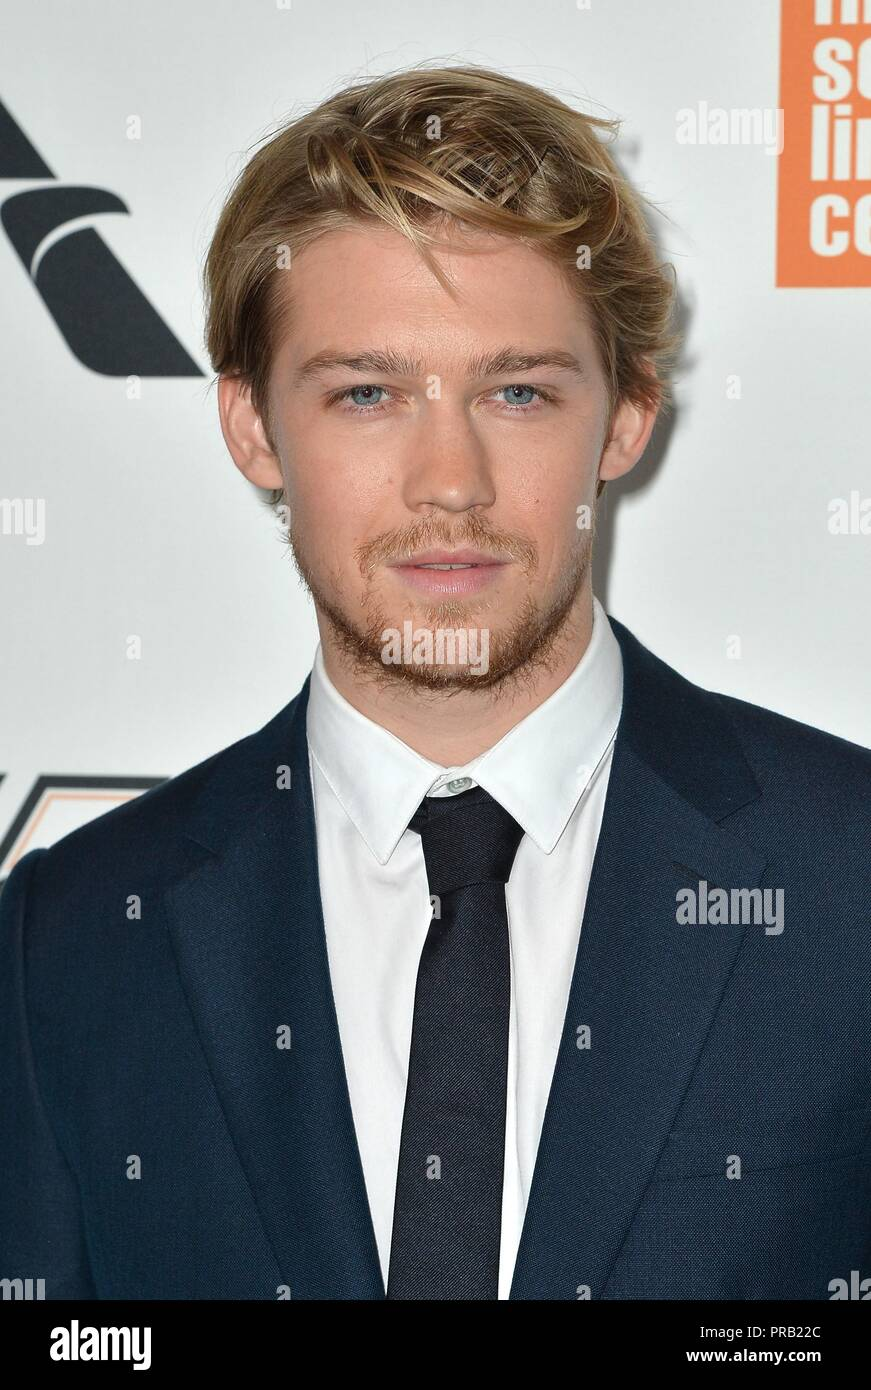 Joe Alwyn at arrivals for THE FAVOURITE Premiere at the New York Film Festival Opening Night, Alice Tully Hall at Lincoln Center, New York, NY September 28, 2018. Photo By: Kristin Callahan/Everett Collection - Stock Image